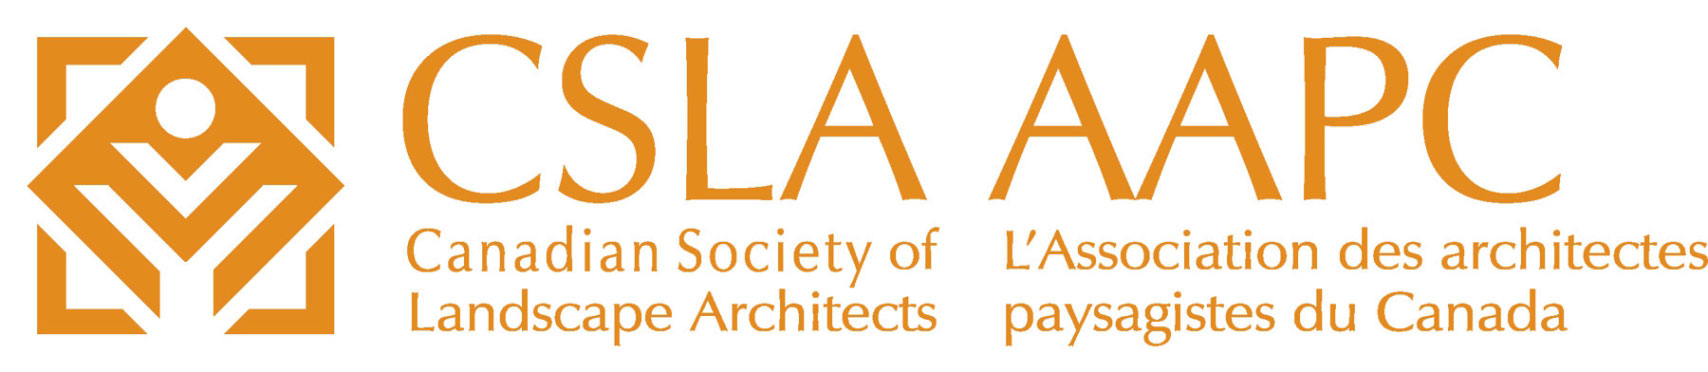 Canadian Society of Landscape Architects